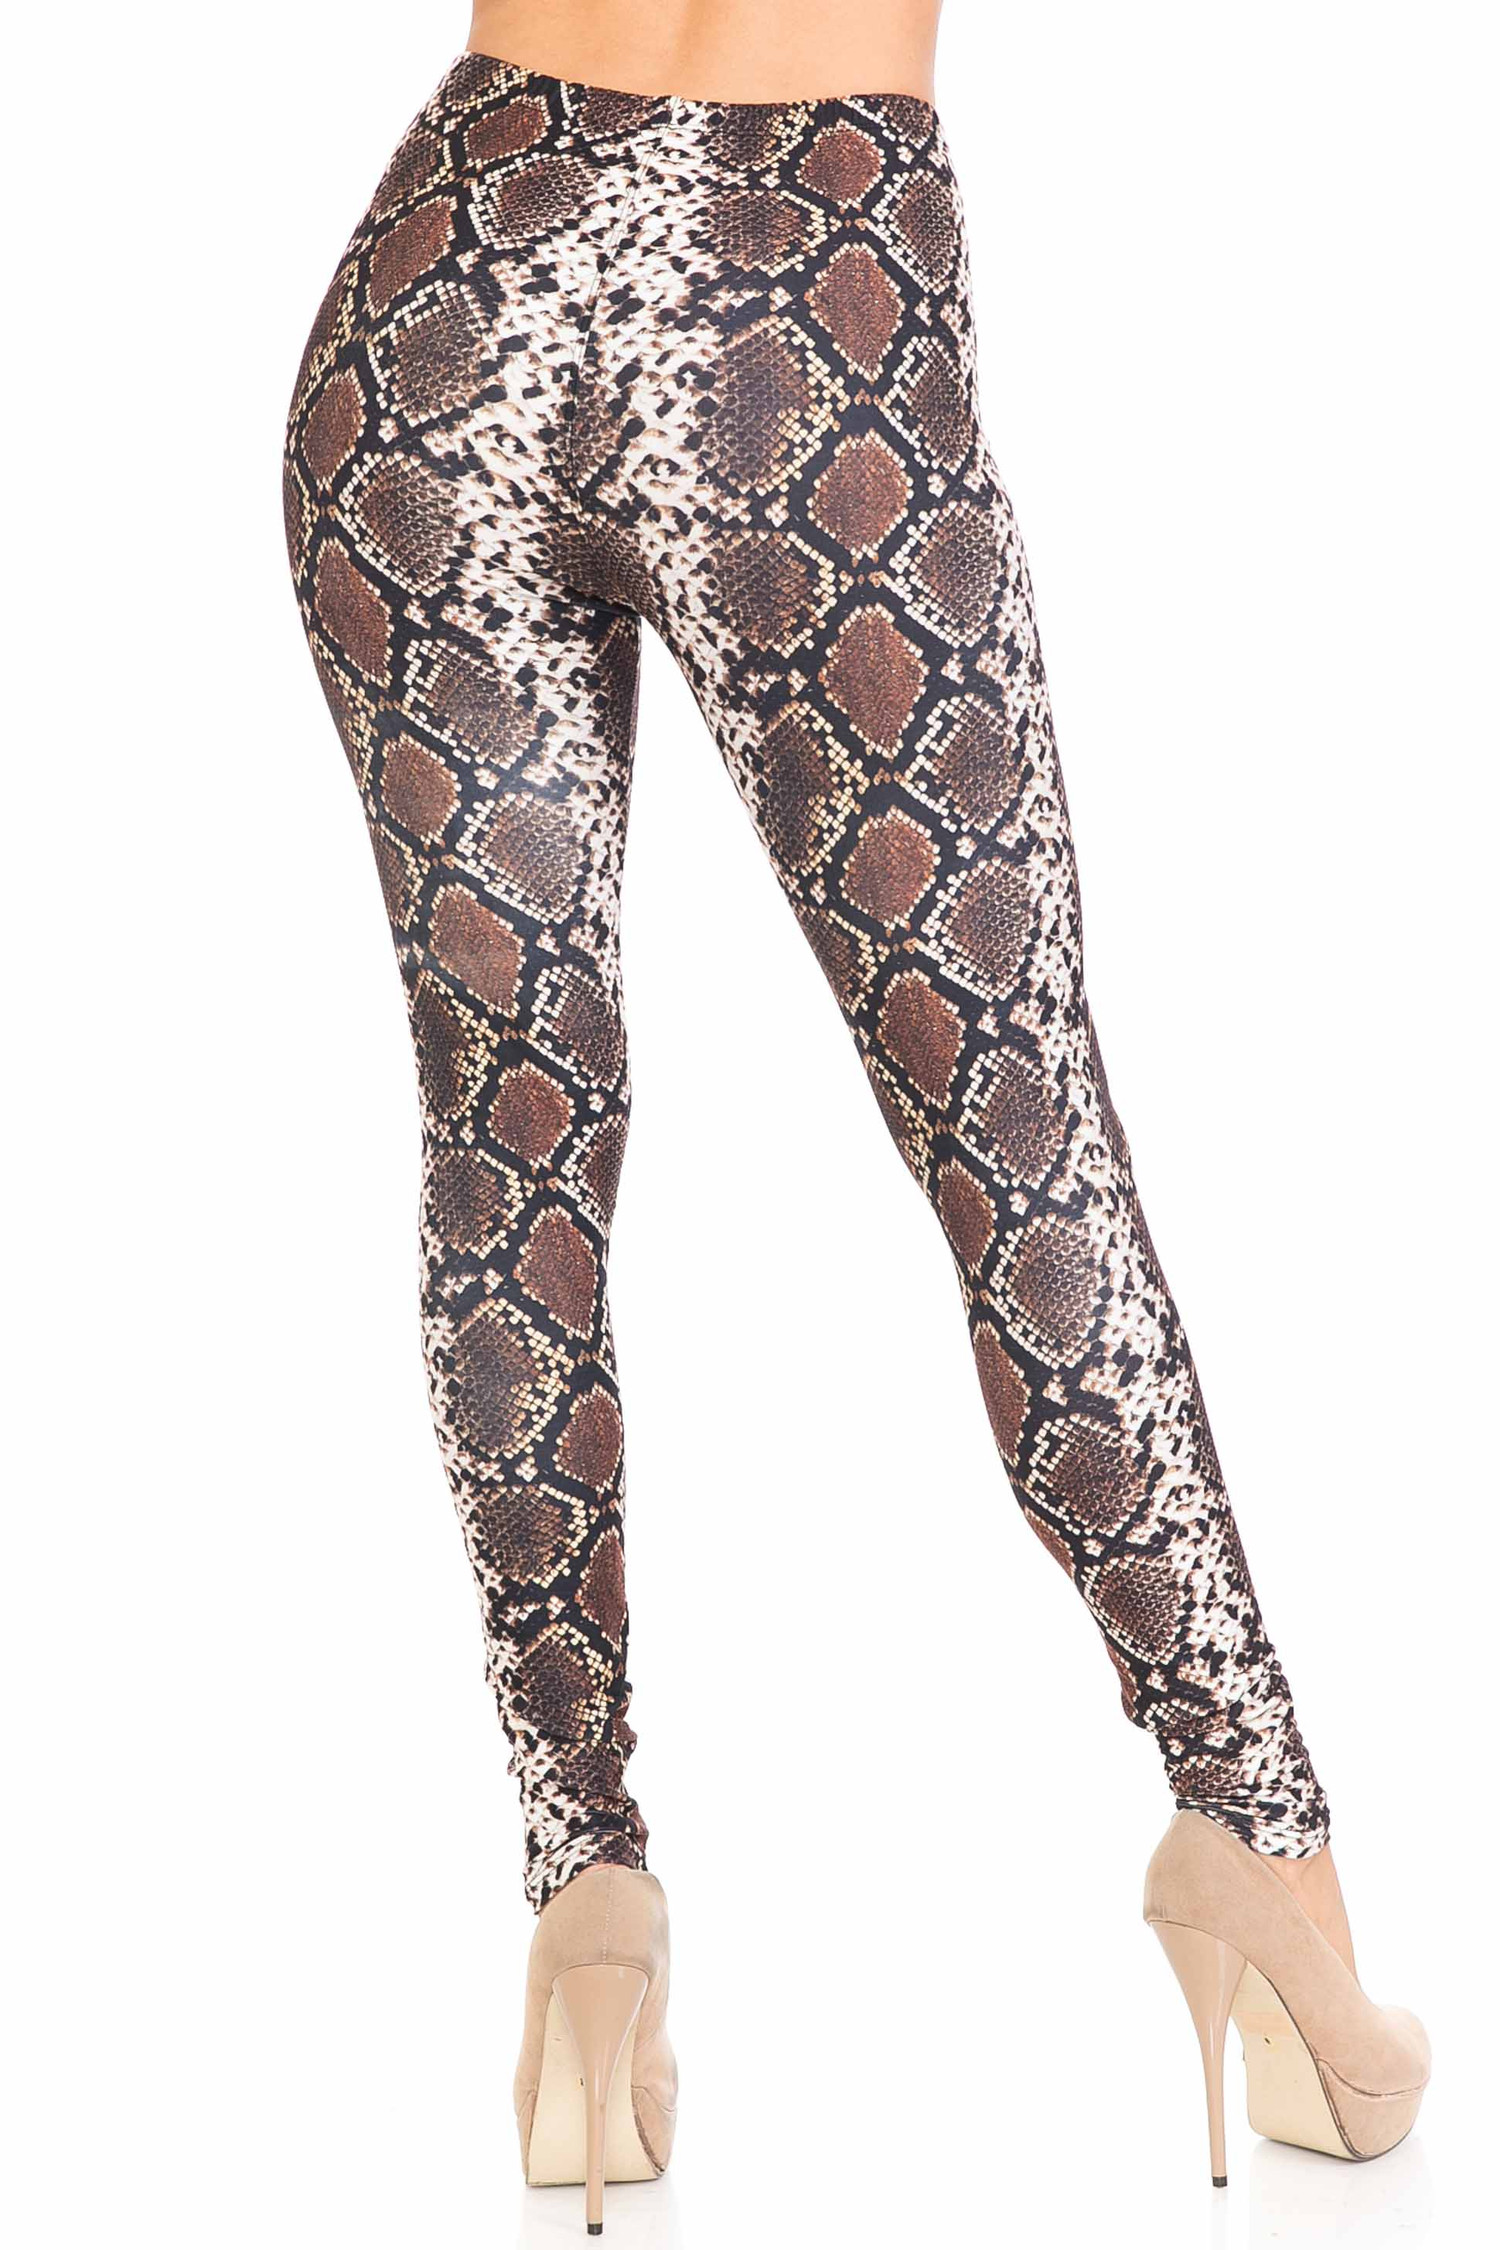 Back view of our sexy Creamy Soft Brown Boa Leggings - USA Fashion™ with a sassy all over reptile print.